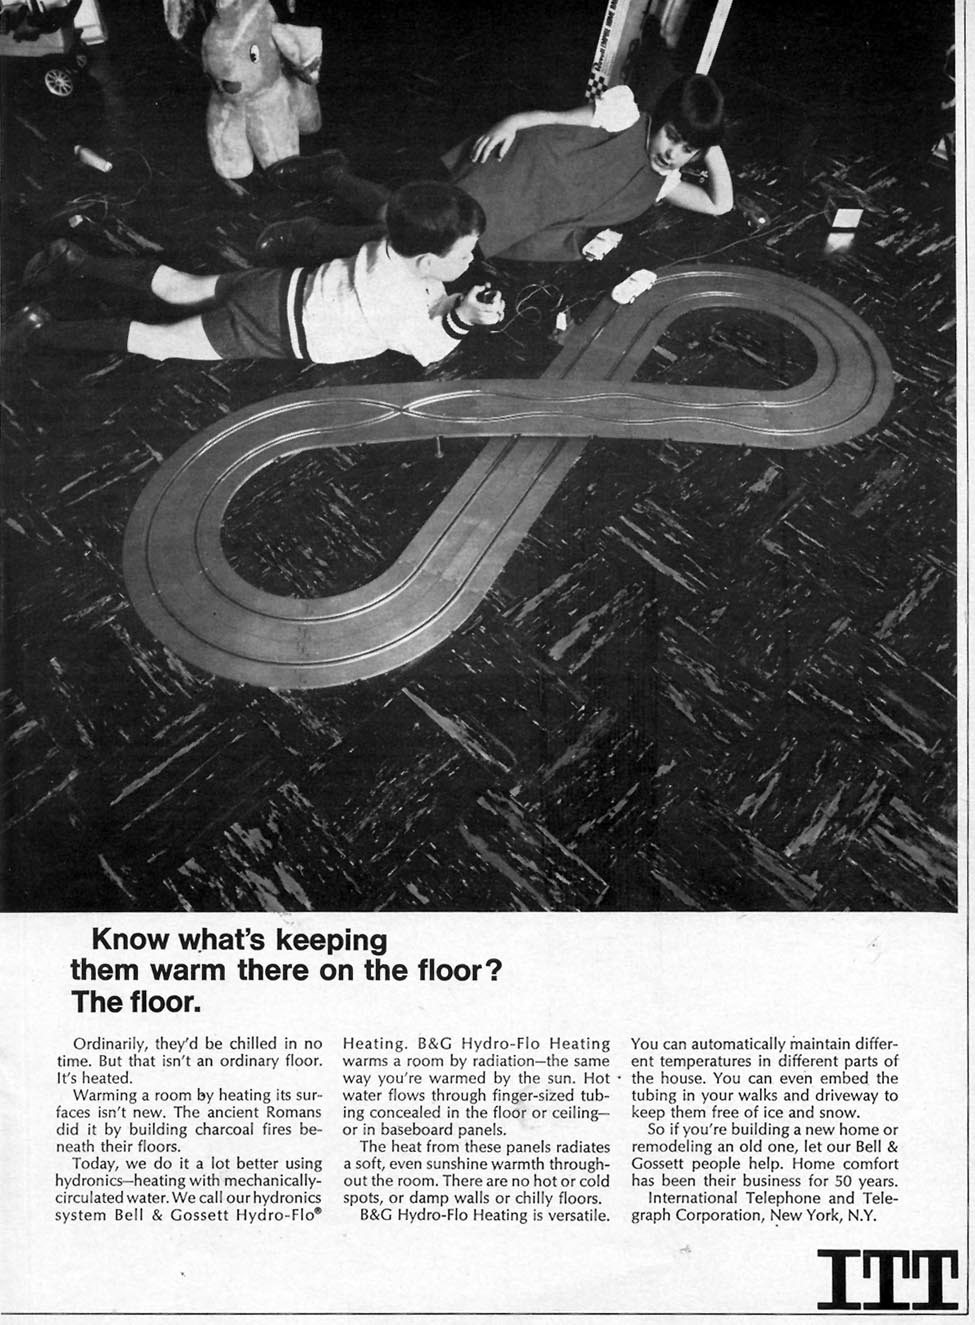 BELL & GOSSETT HYDRO-FLOW HEATING TIME 04/21/1967 p. 59